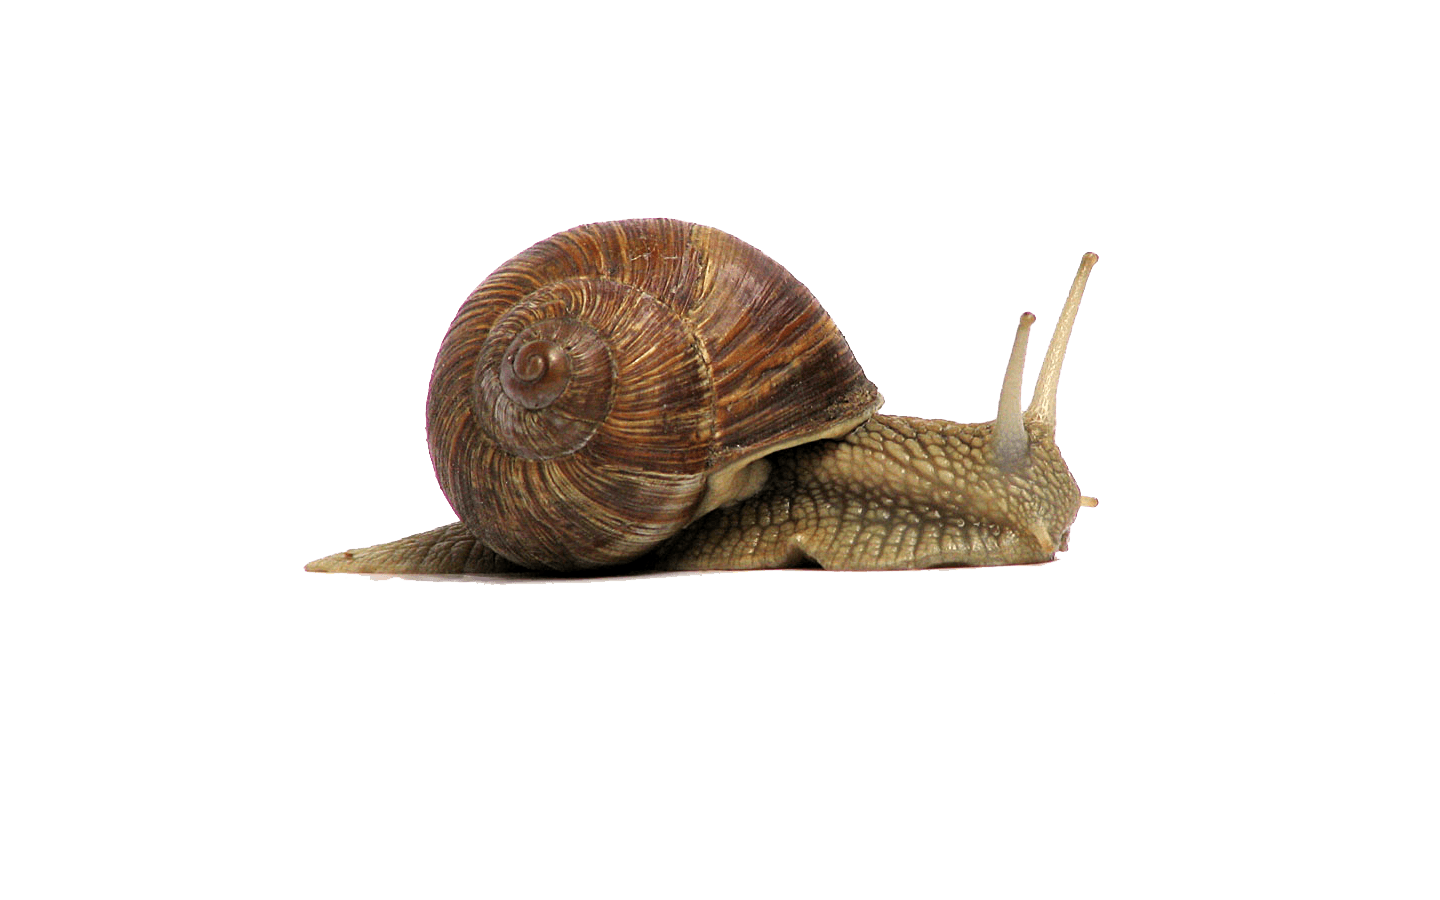 Snail png transparent background. Brown stickpng